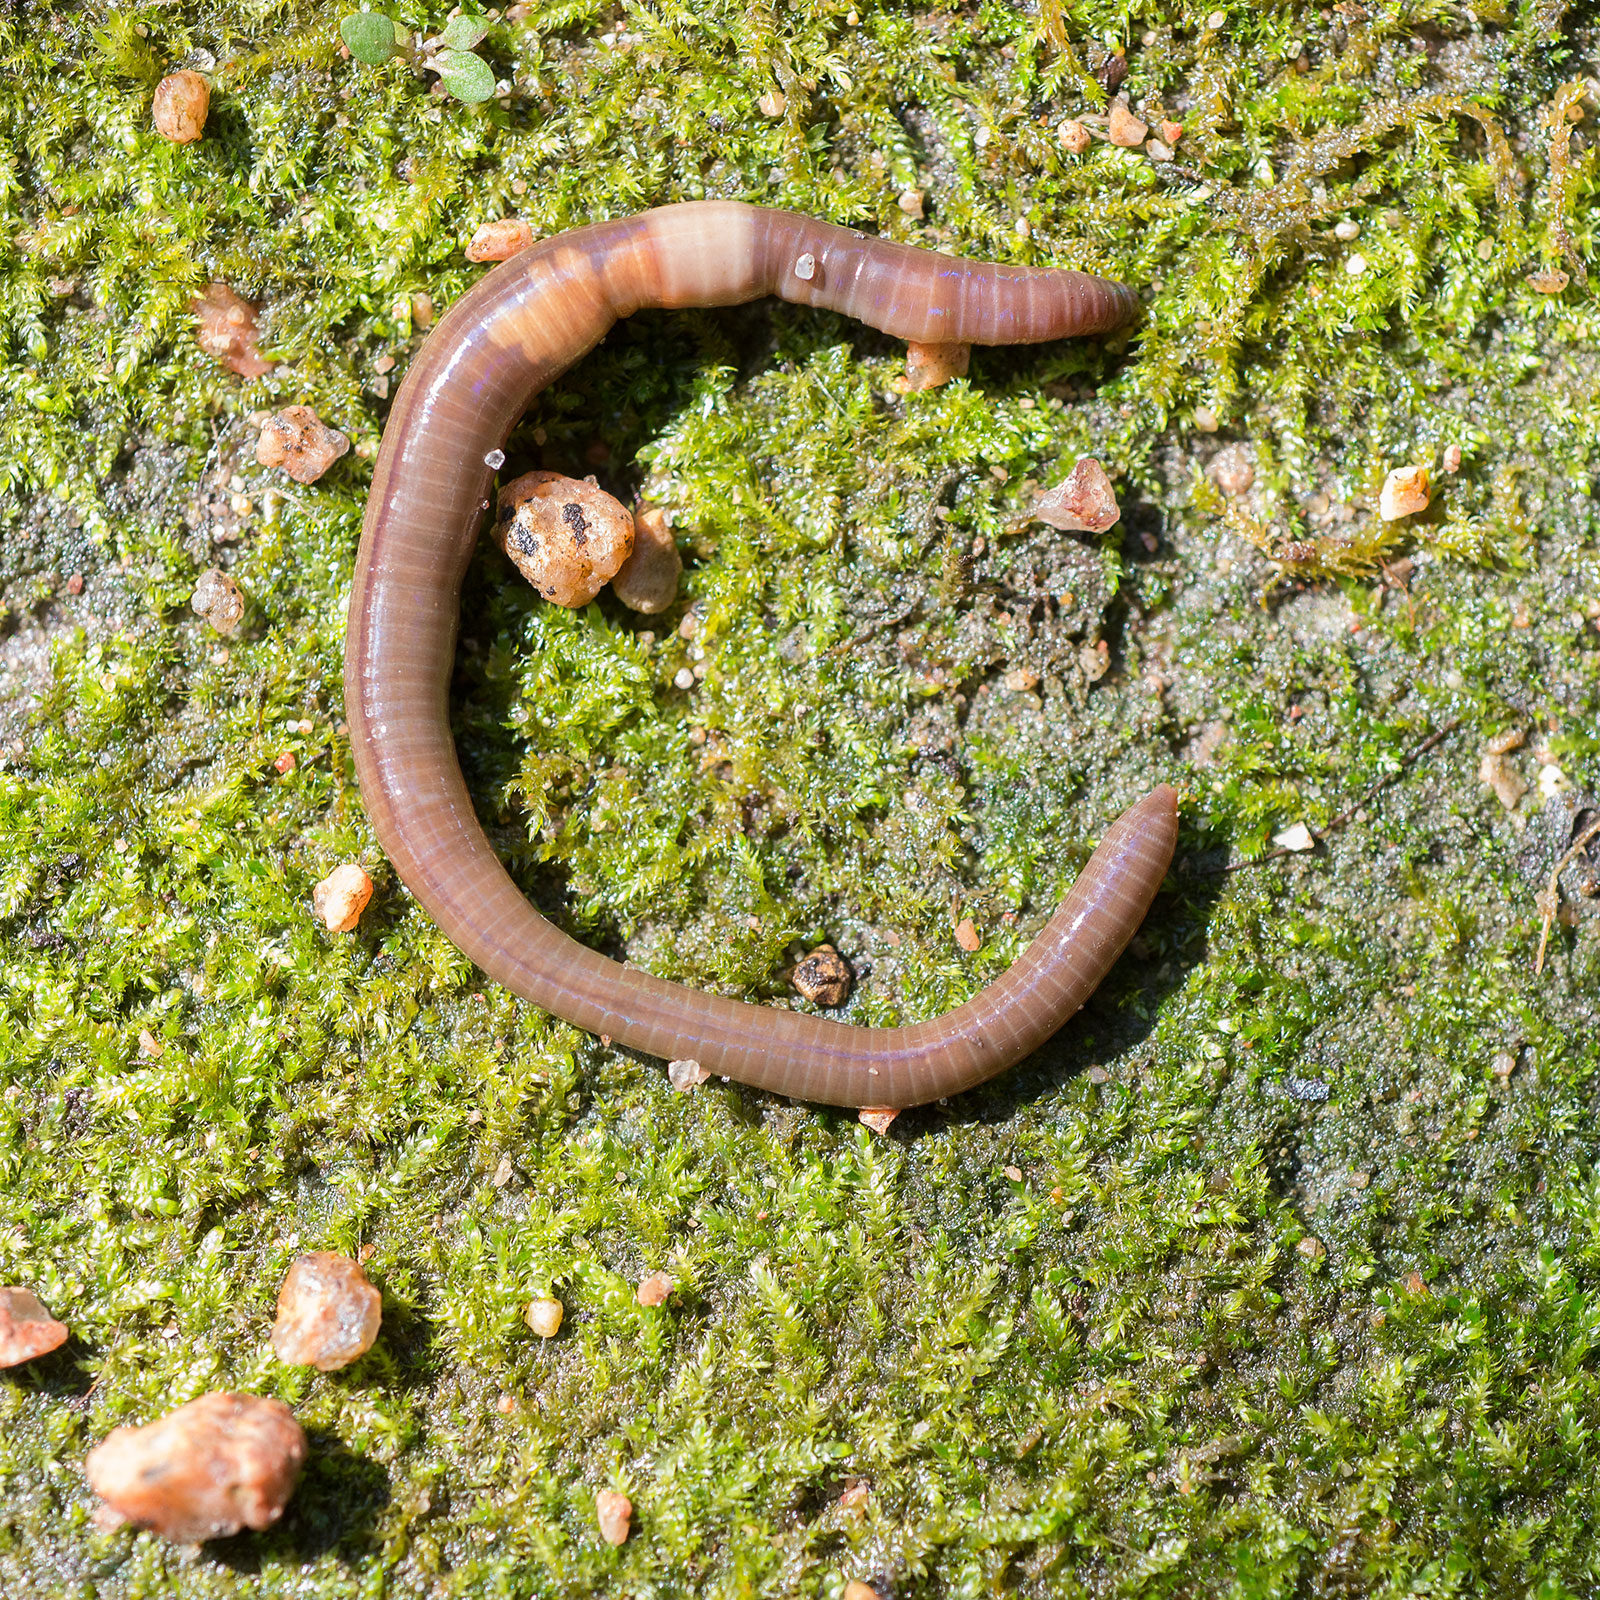 PHOTO: Crazy Worm (Amynthas agrestis).